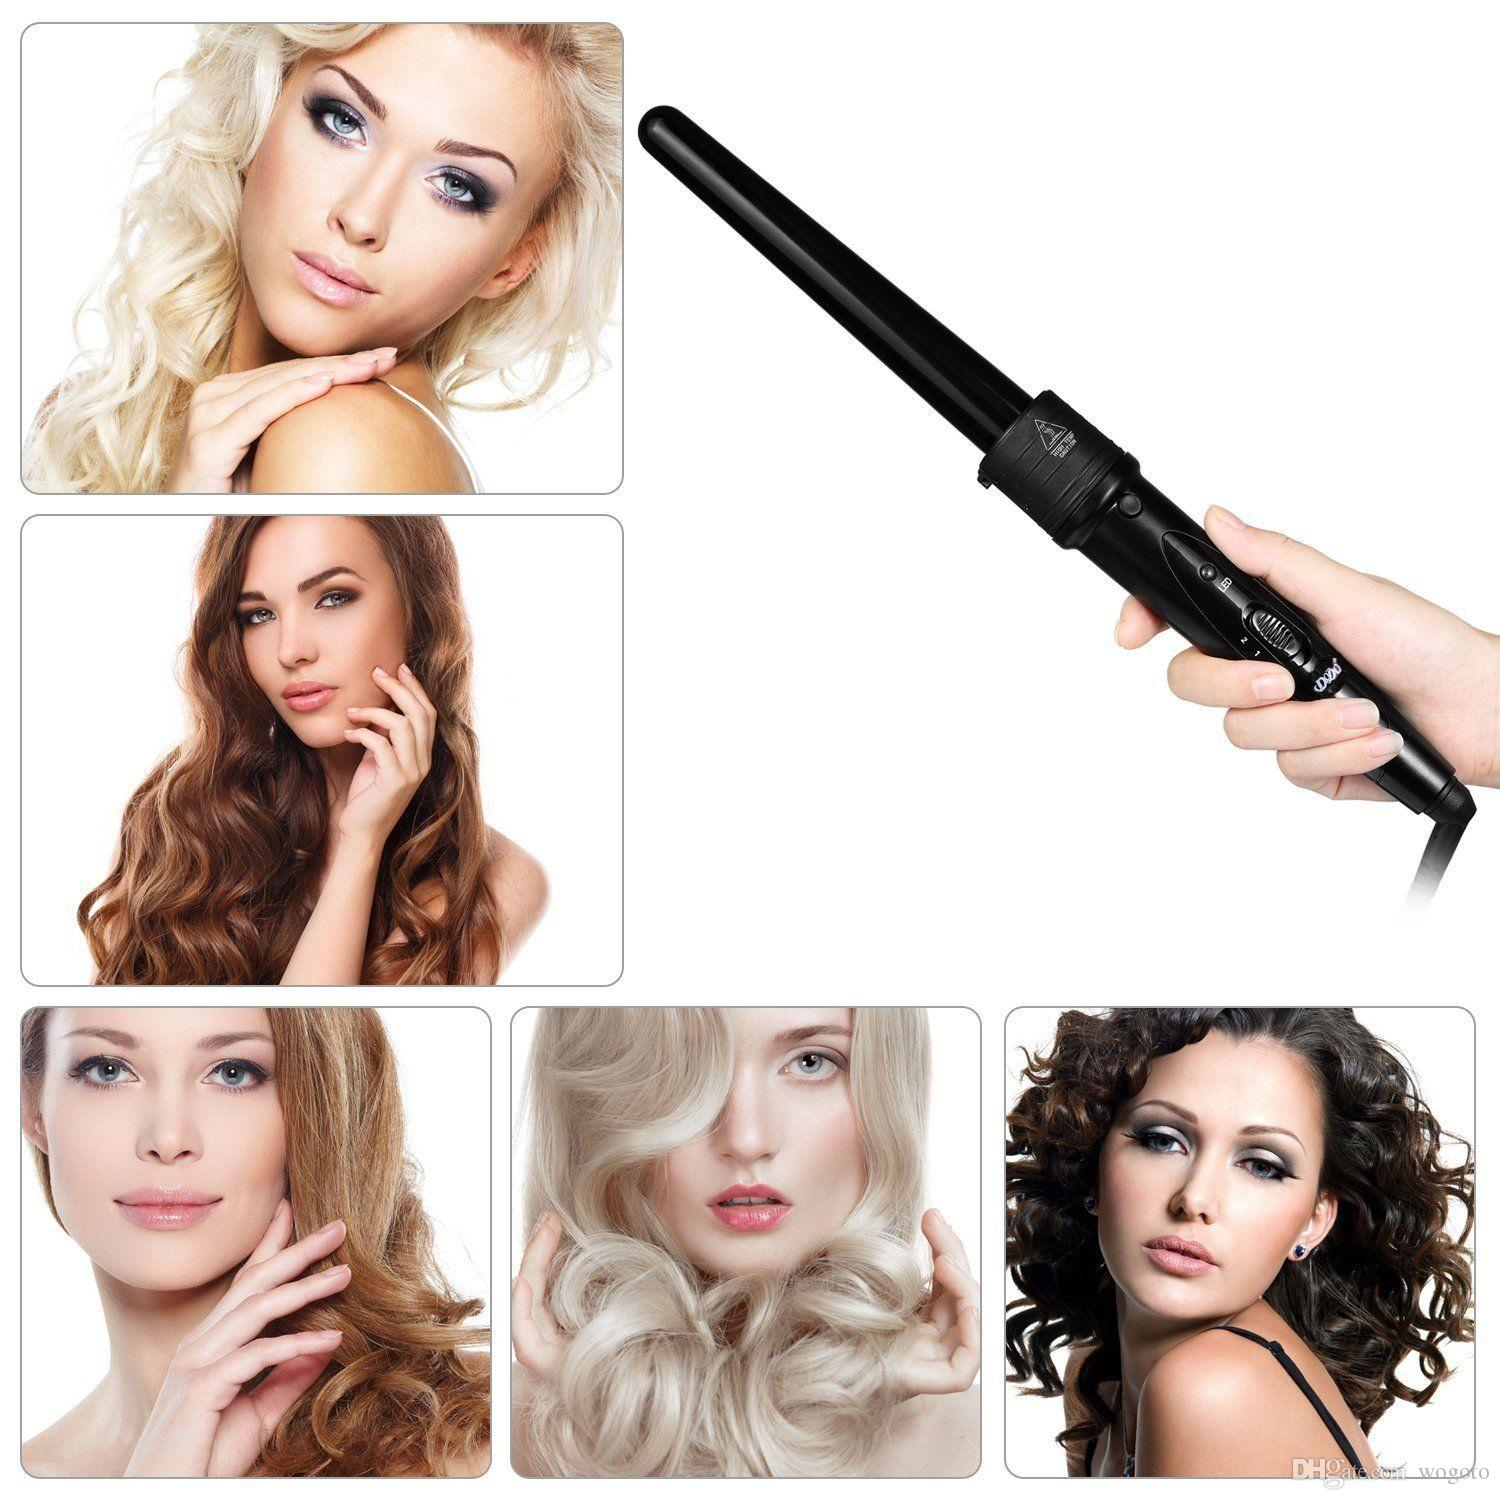 dodo 5 in 1 hair curlers styling curling wand hair curler hair iron